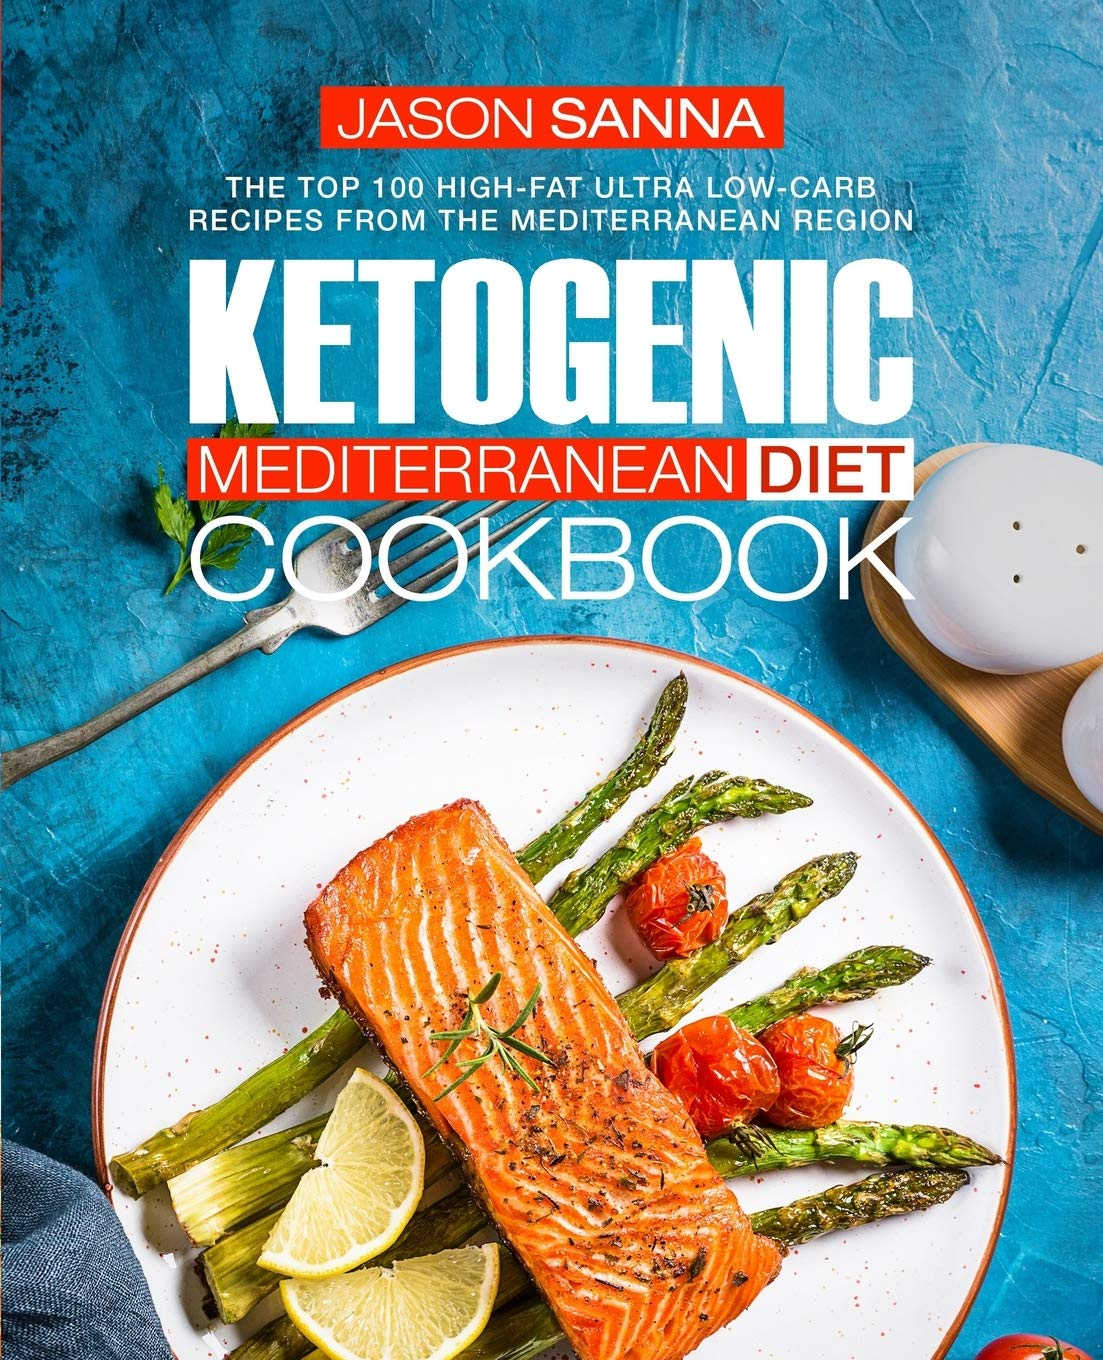 Ketogenic Mediterranean Diet Cookbook: The Top 100 High-Fat Ultra Low-Carb Recipes from the Mediterranean Region 1